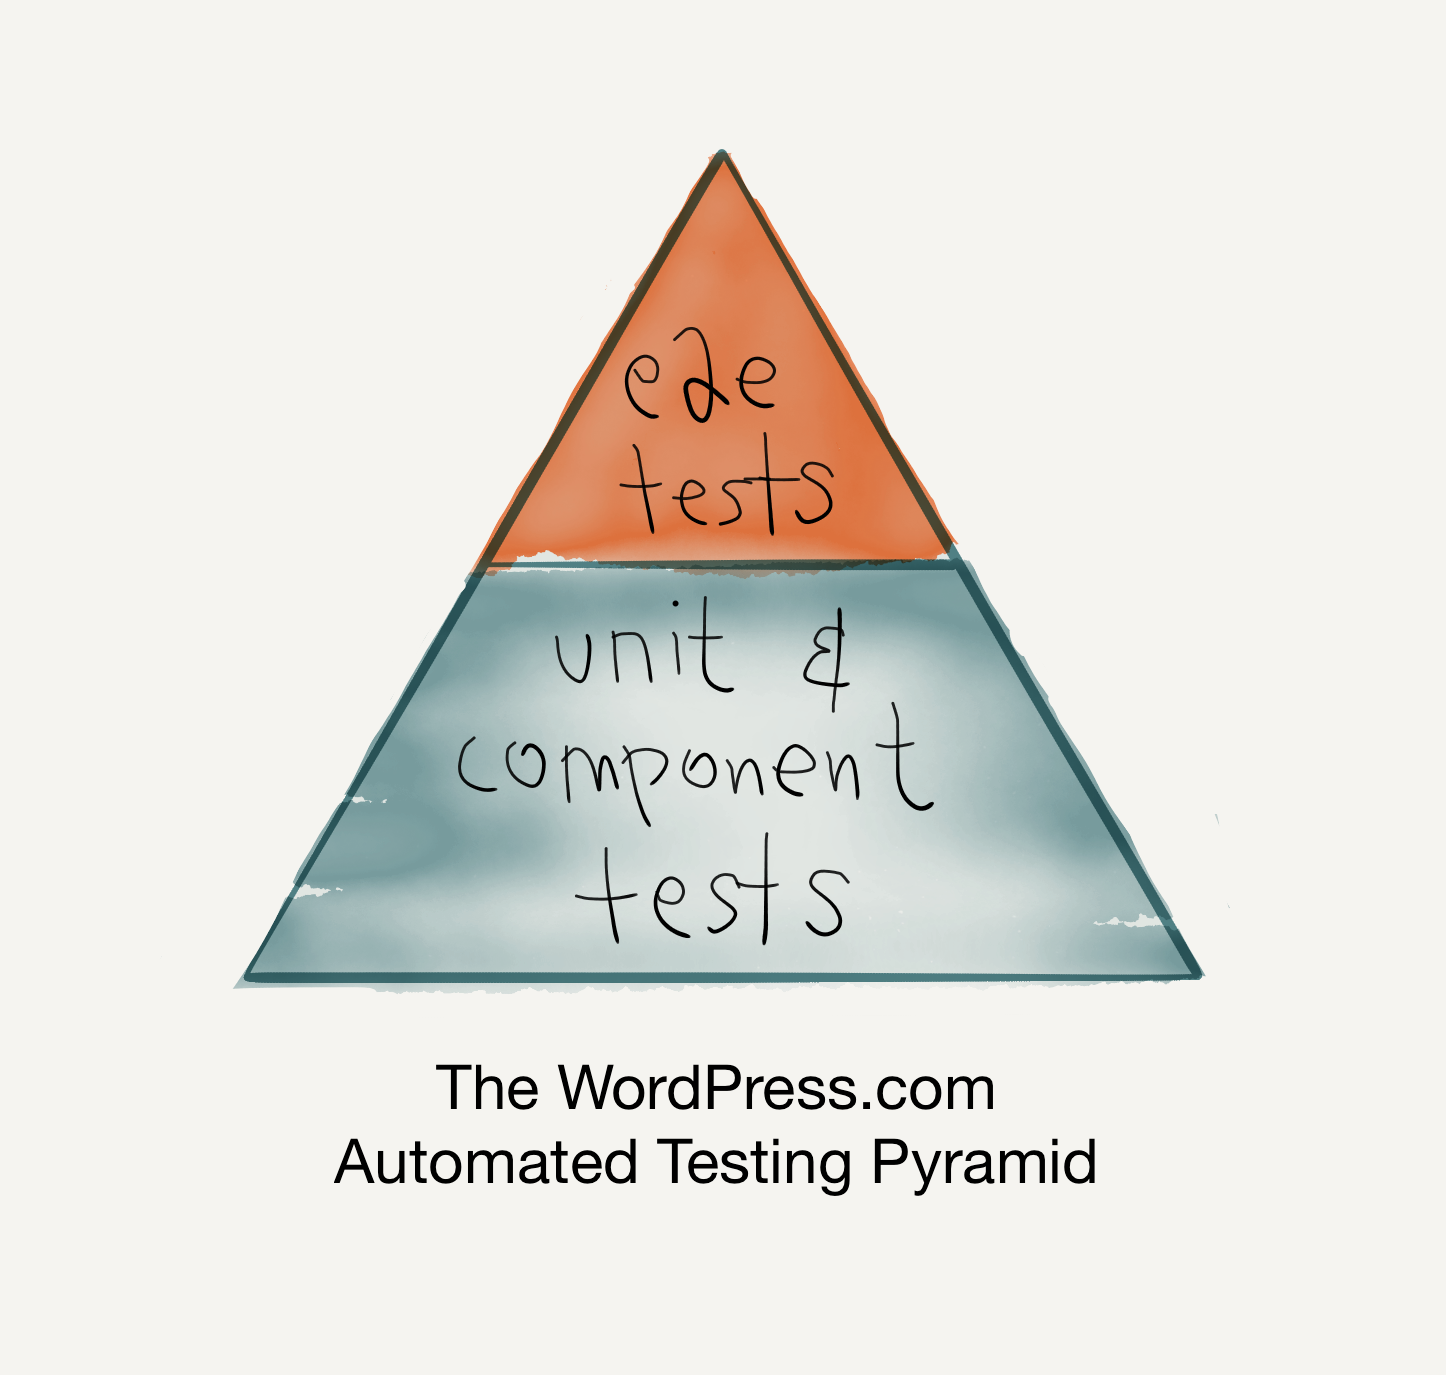 WordPress.com Automated Testing Pyramid.PNG